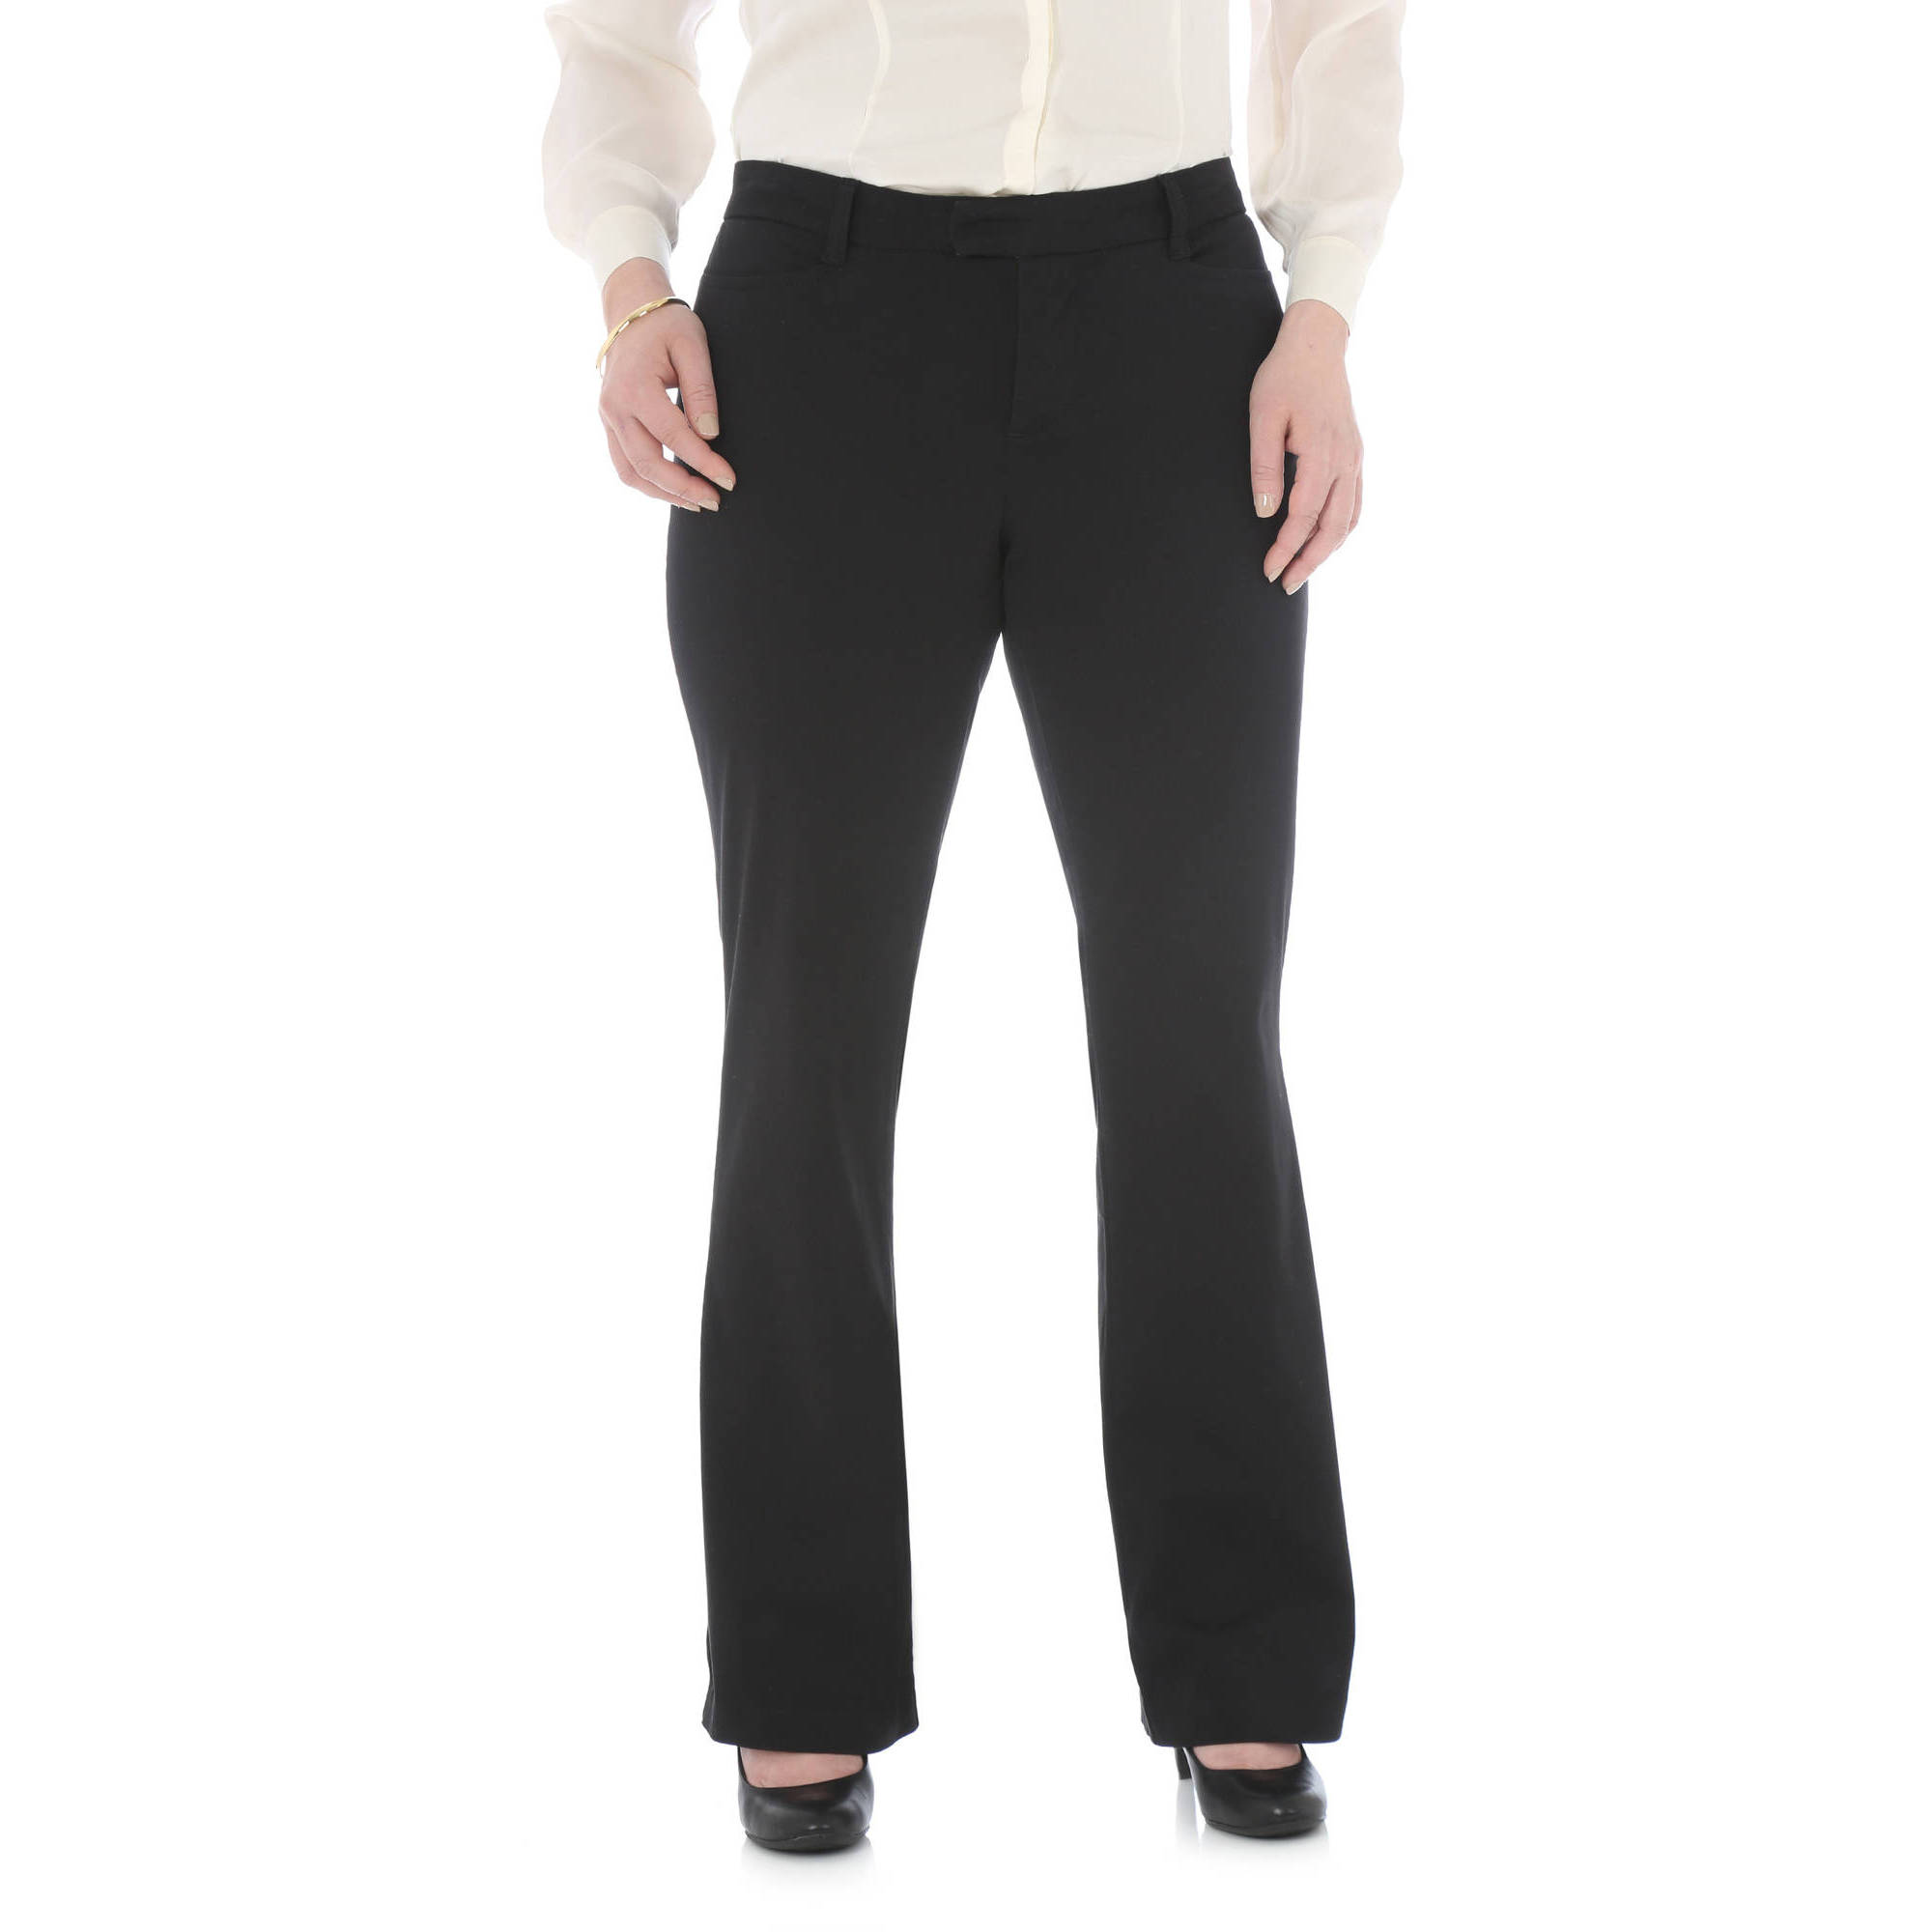 The Riders By Lee Women's Heavenly Touch Casual Pants - Walmart.com